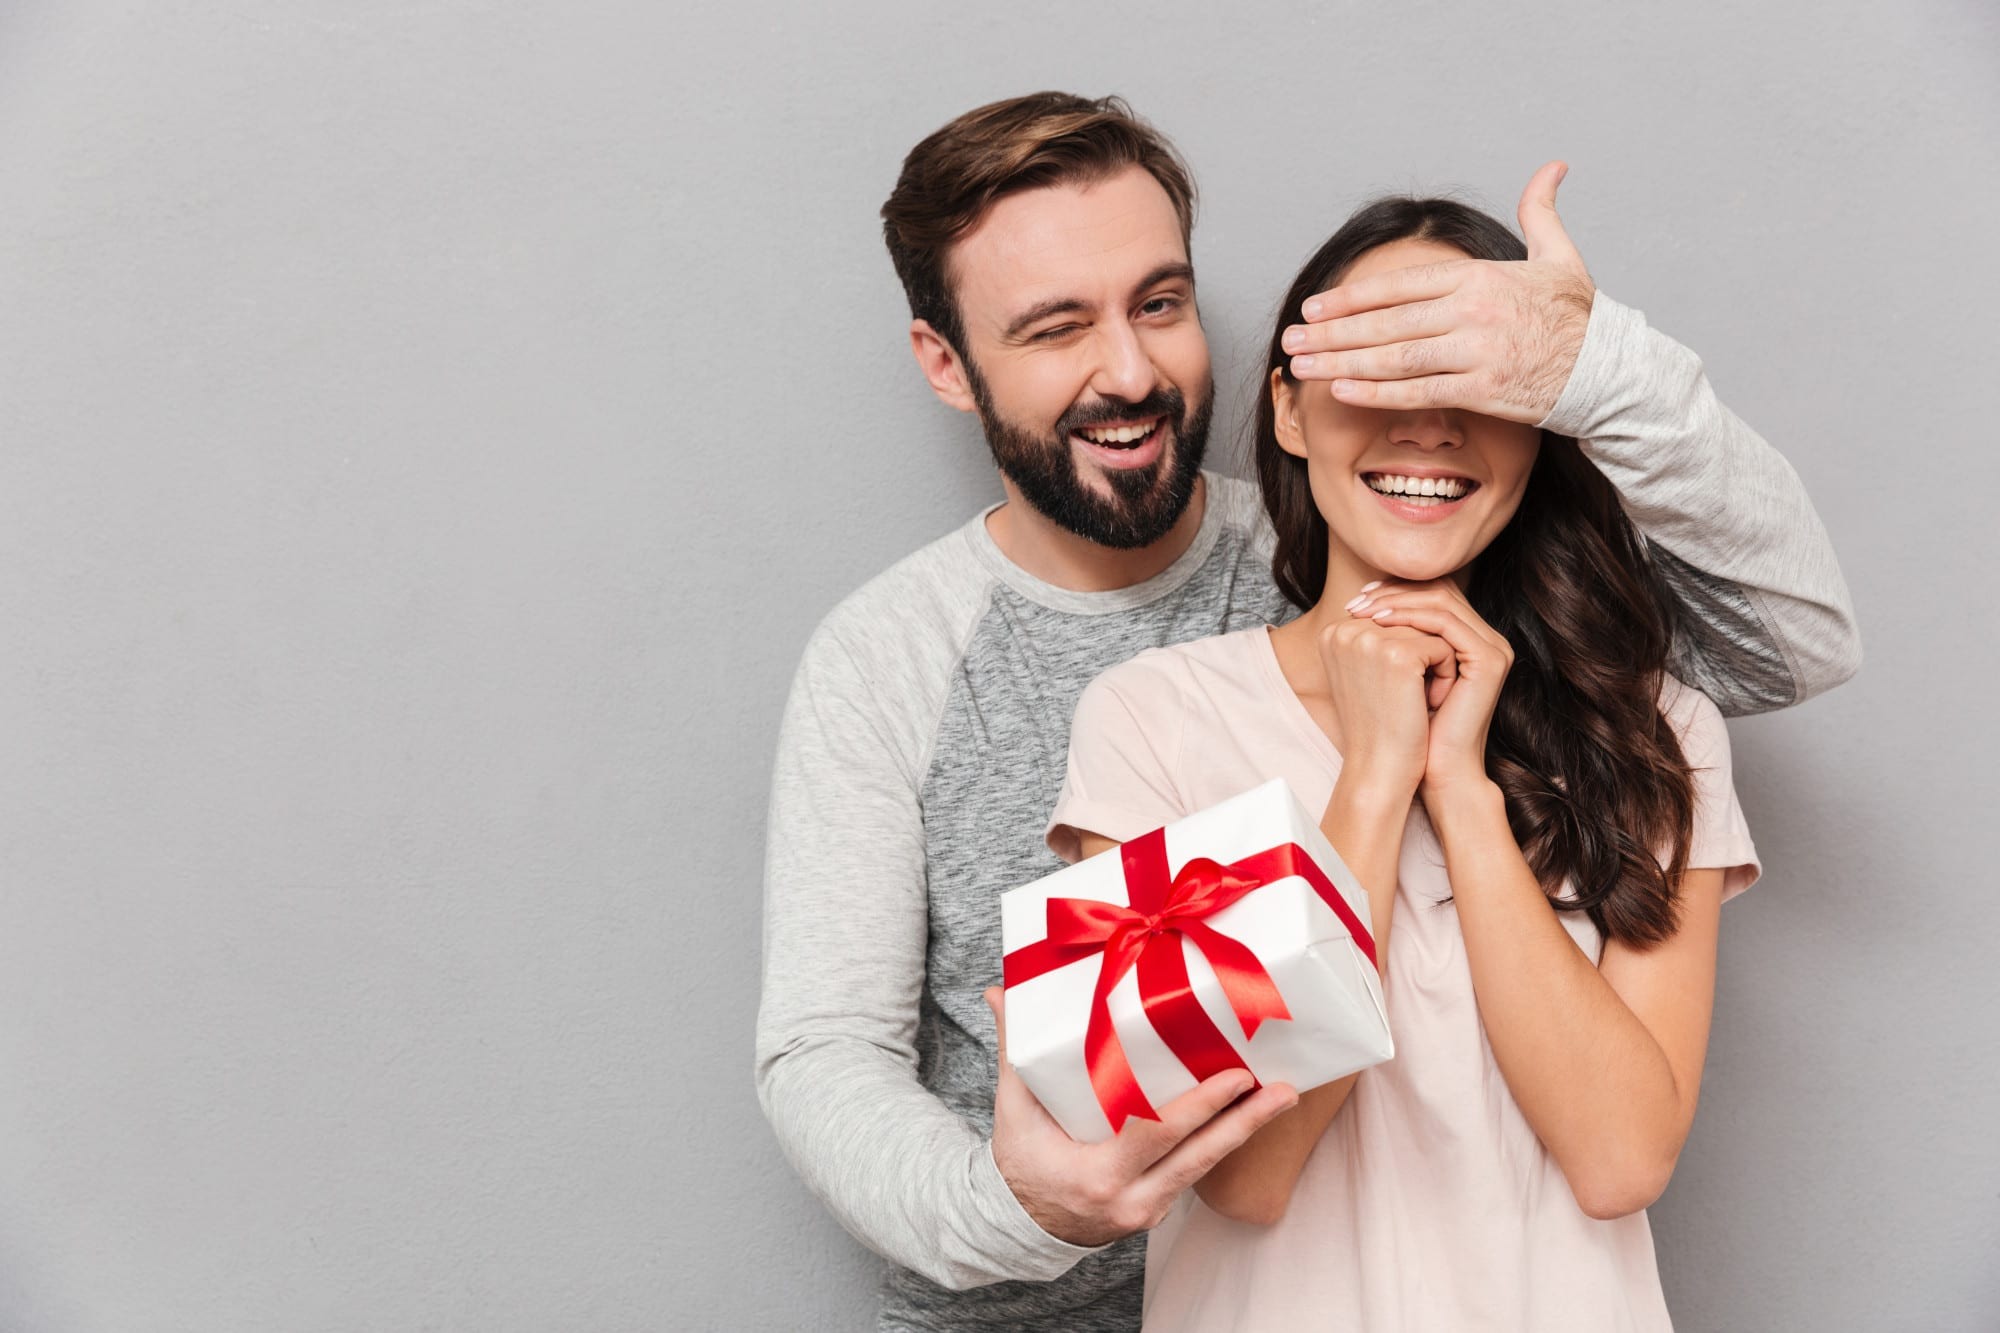 What to Gift Your Girlfriend on her Birthday?